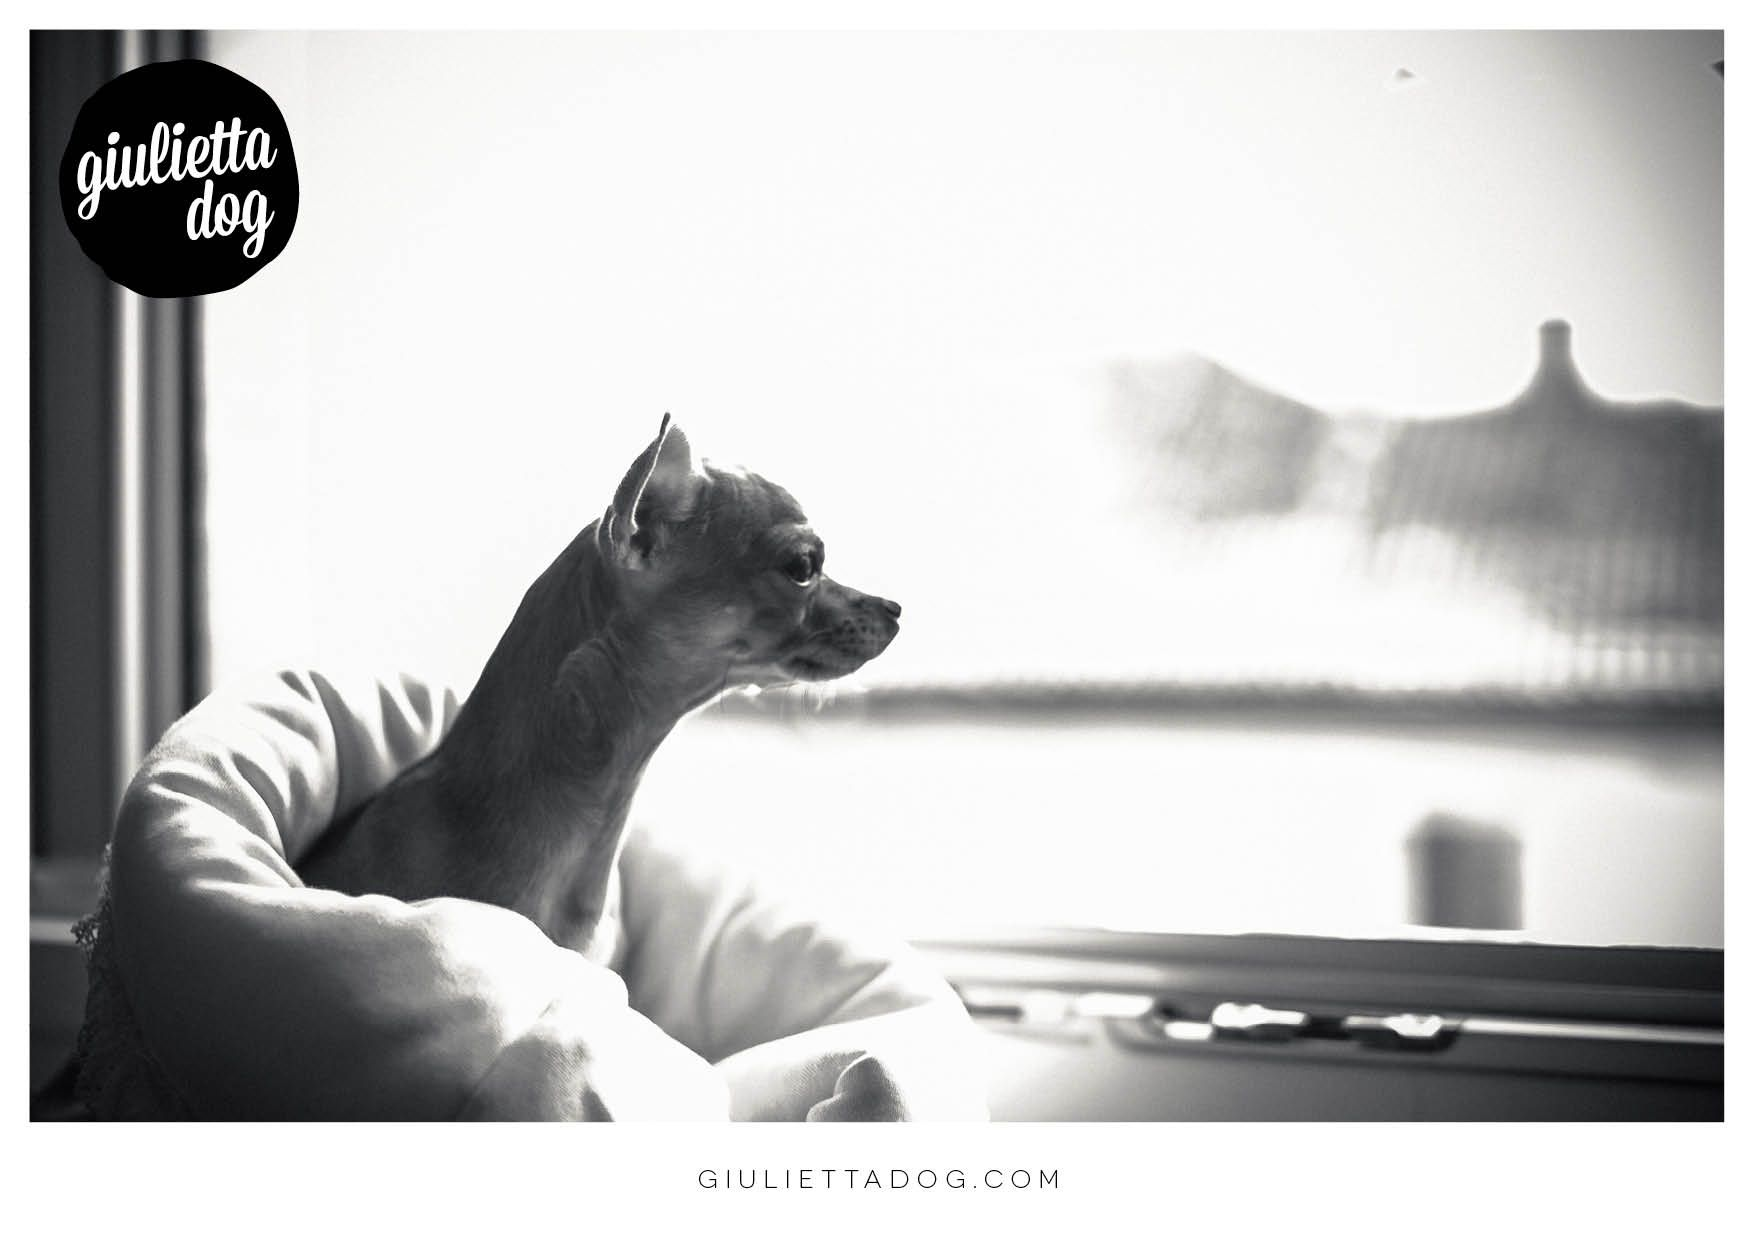 Relax before lunch♥ #goodmorning #blackandwhite #chihuahualovers #overview #window #style #glam